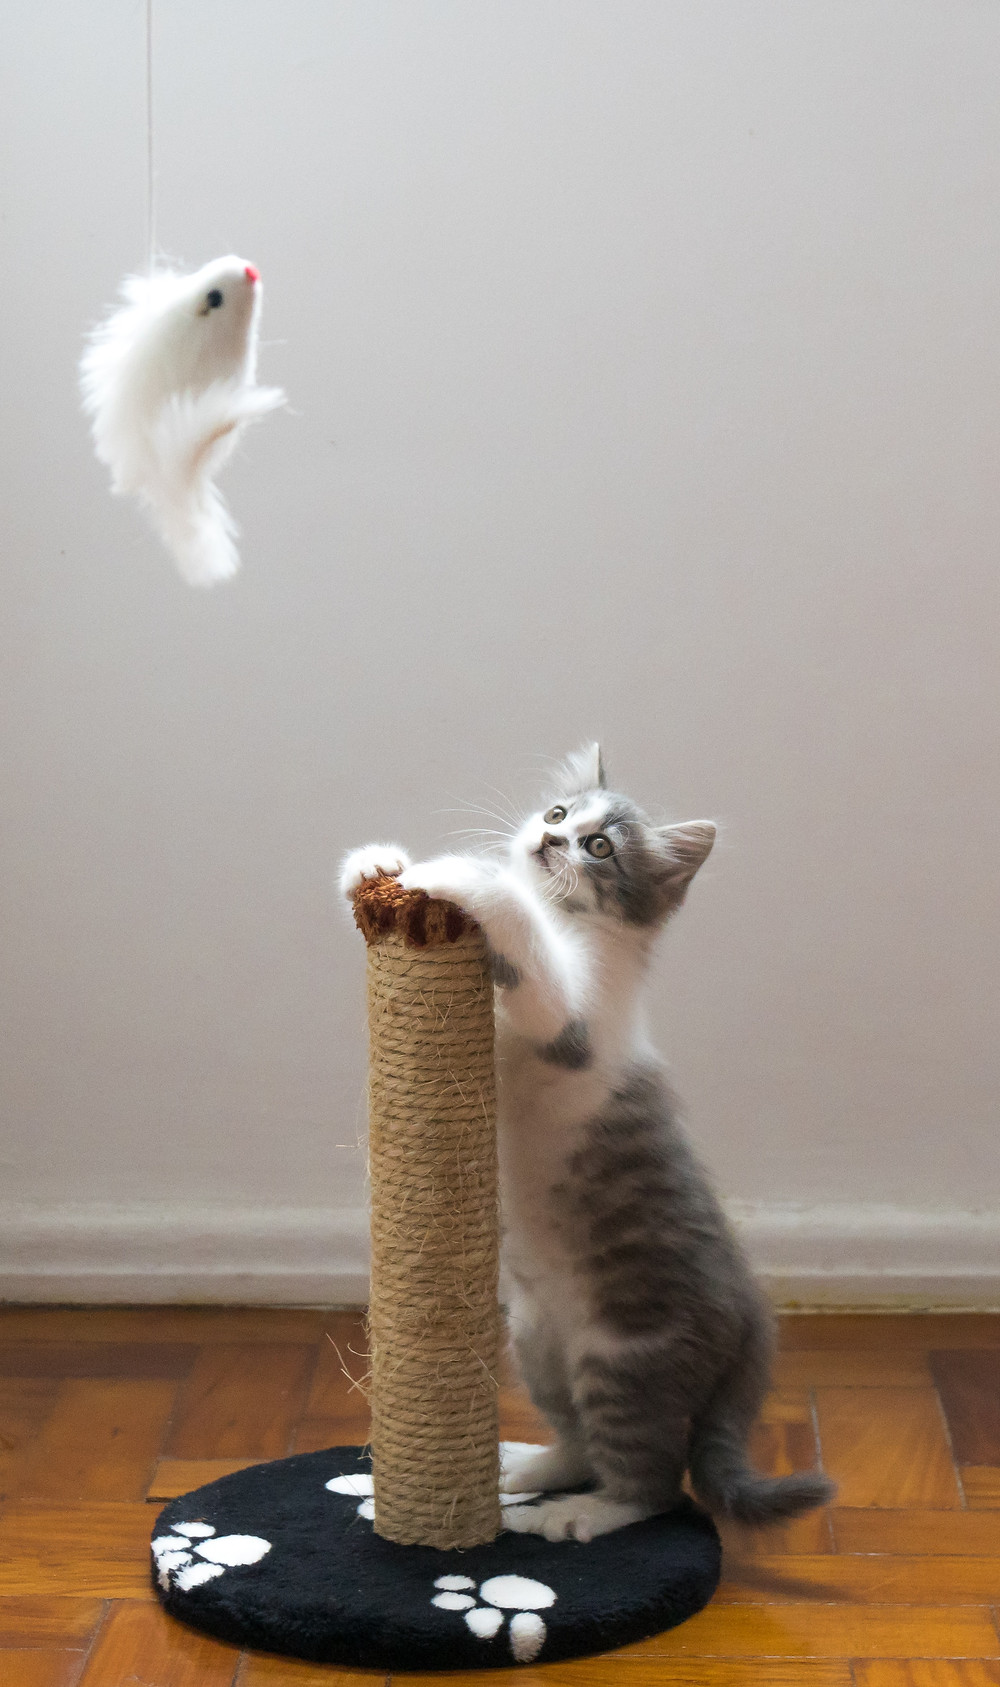 Kitten playing with scratching post.